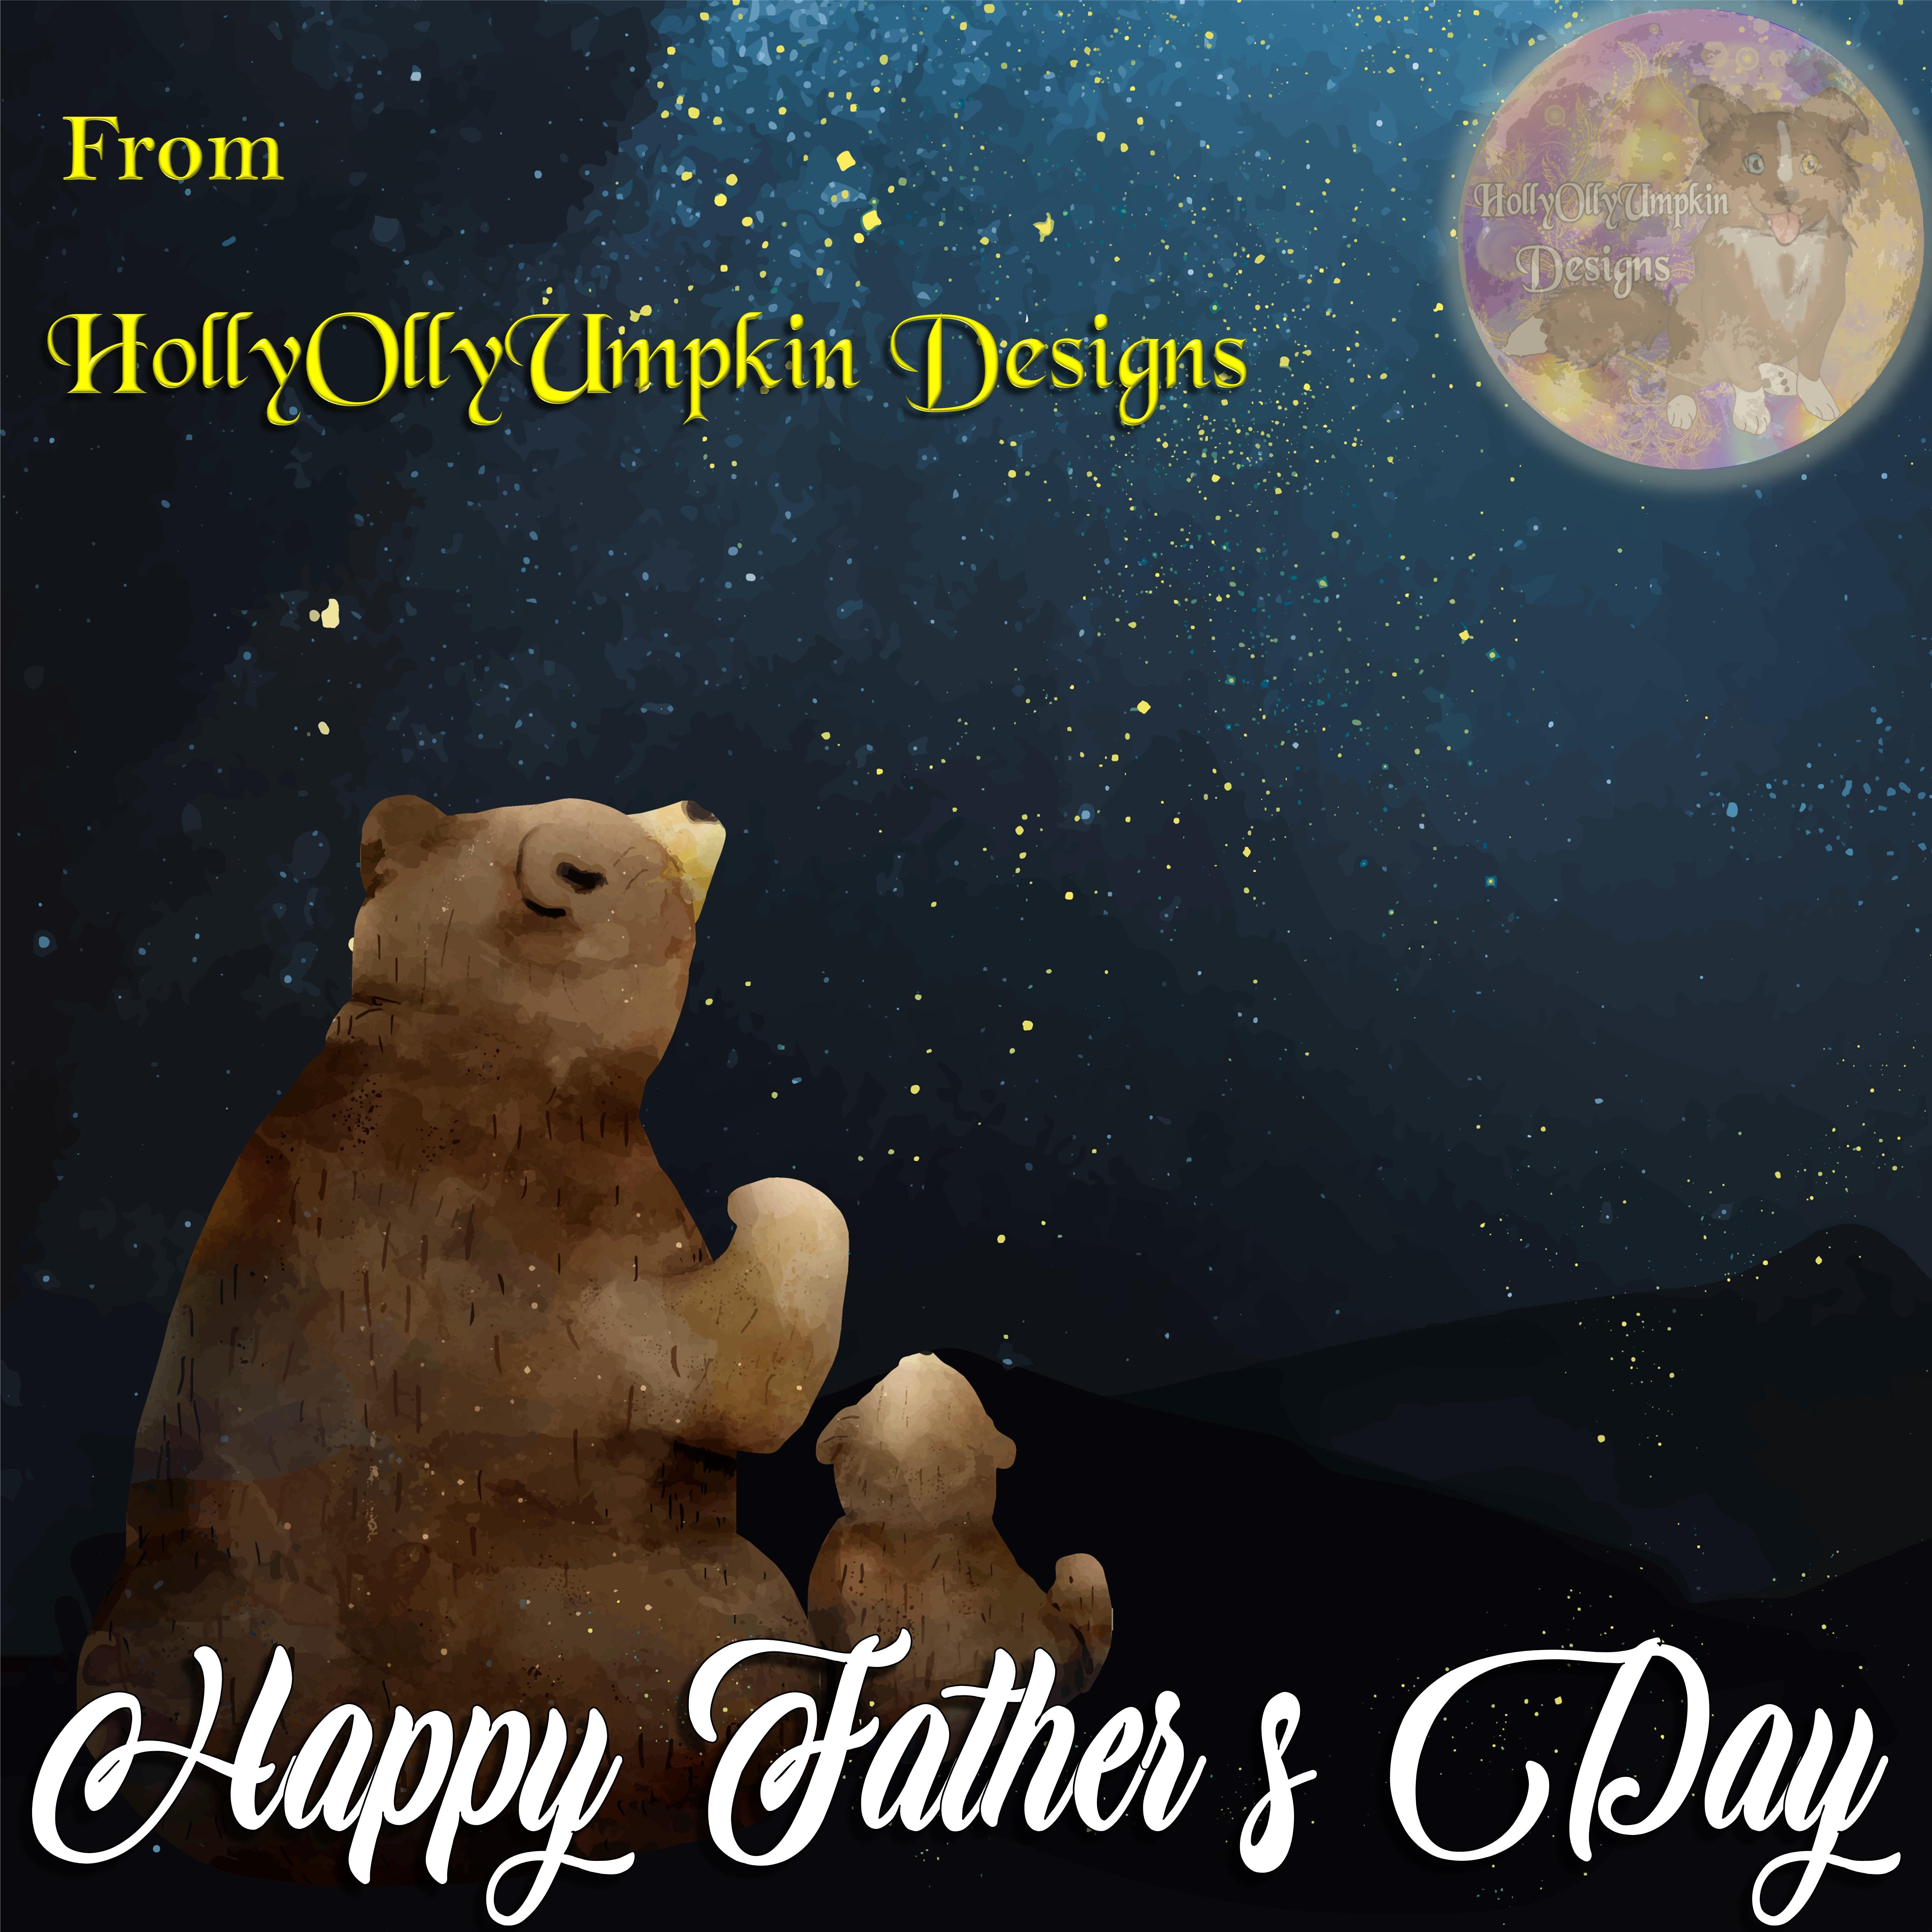 2020.06.20 - Digital Content - HollyOllyUmpkin - Father's Day